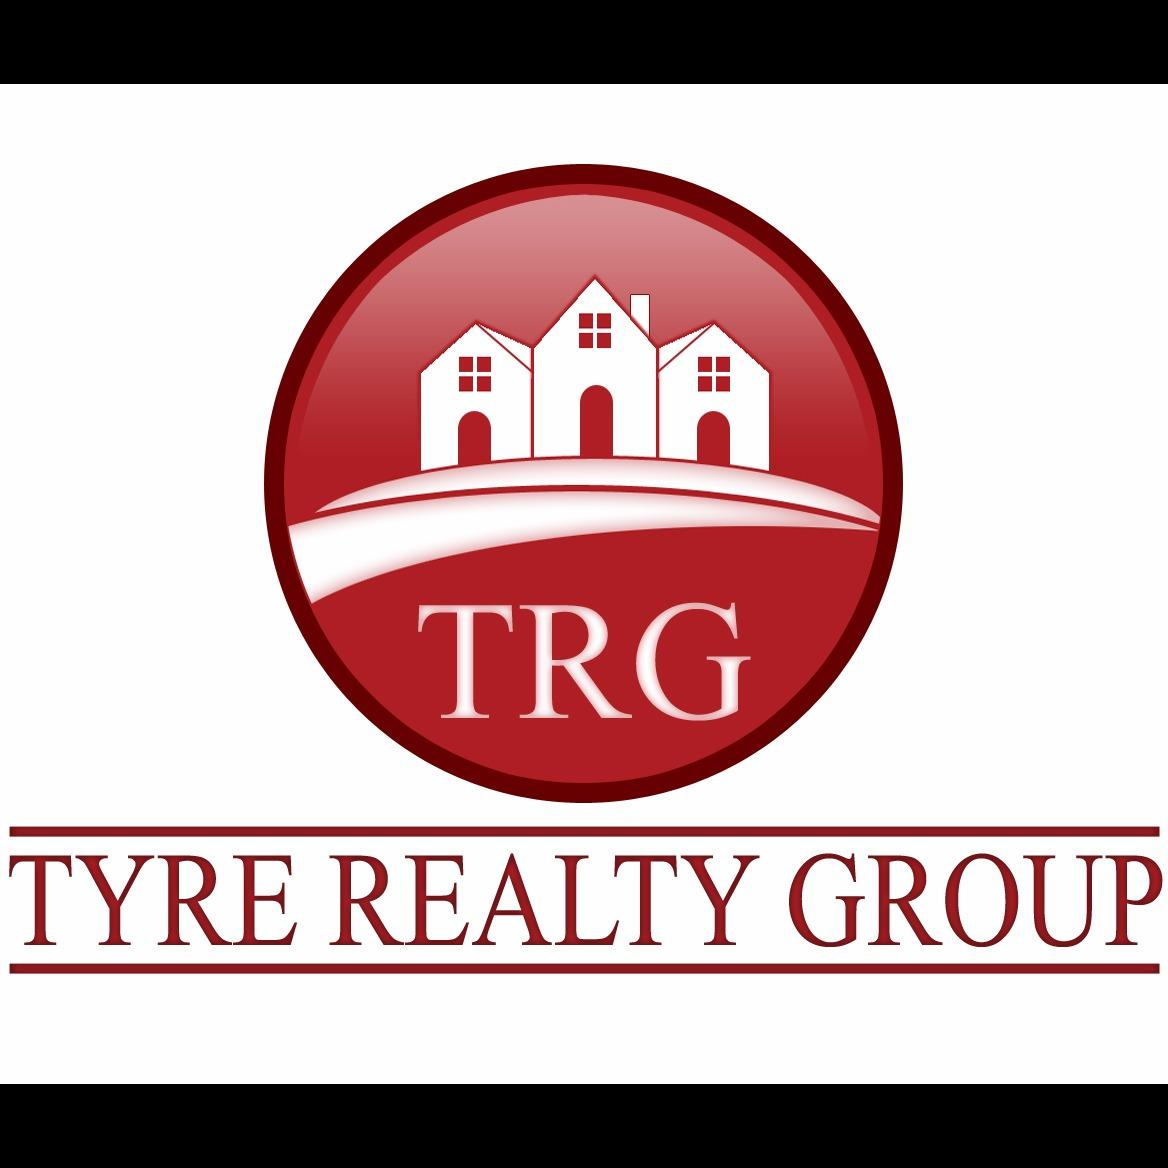 Tyre Realty Group, Inc.